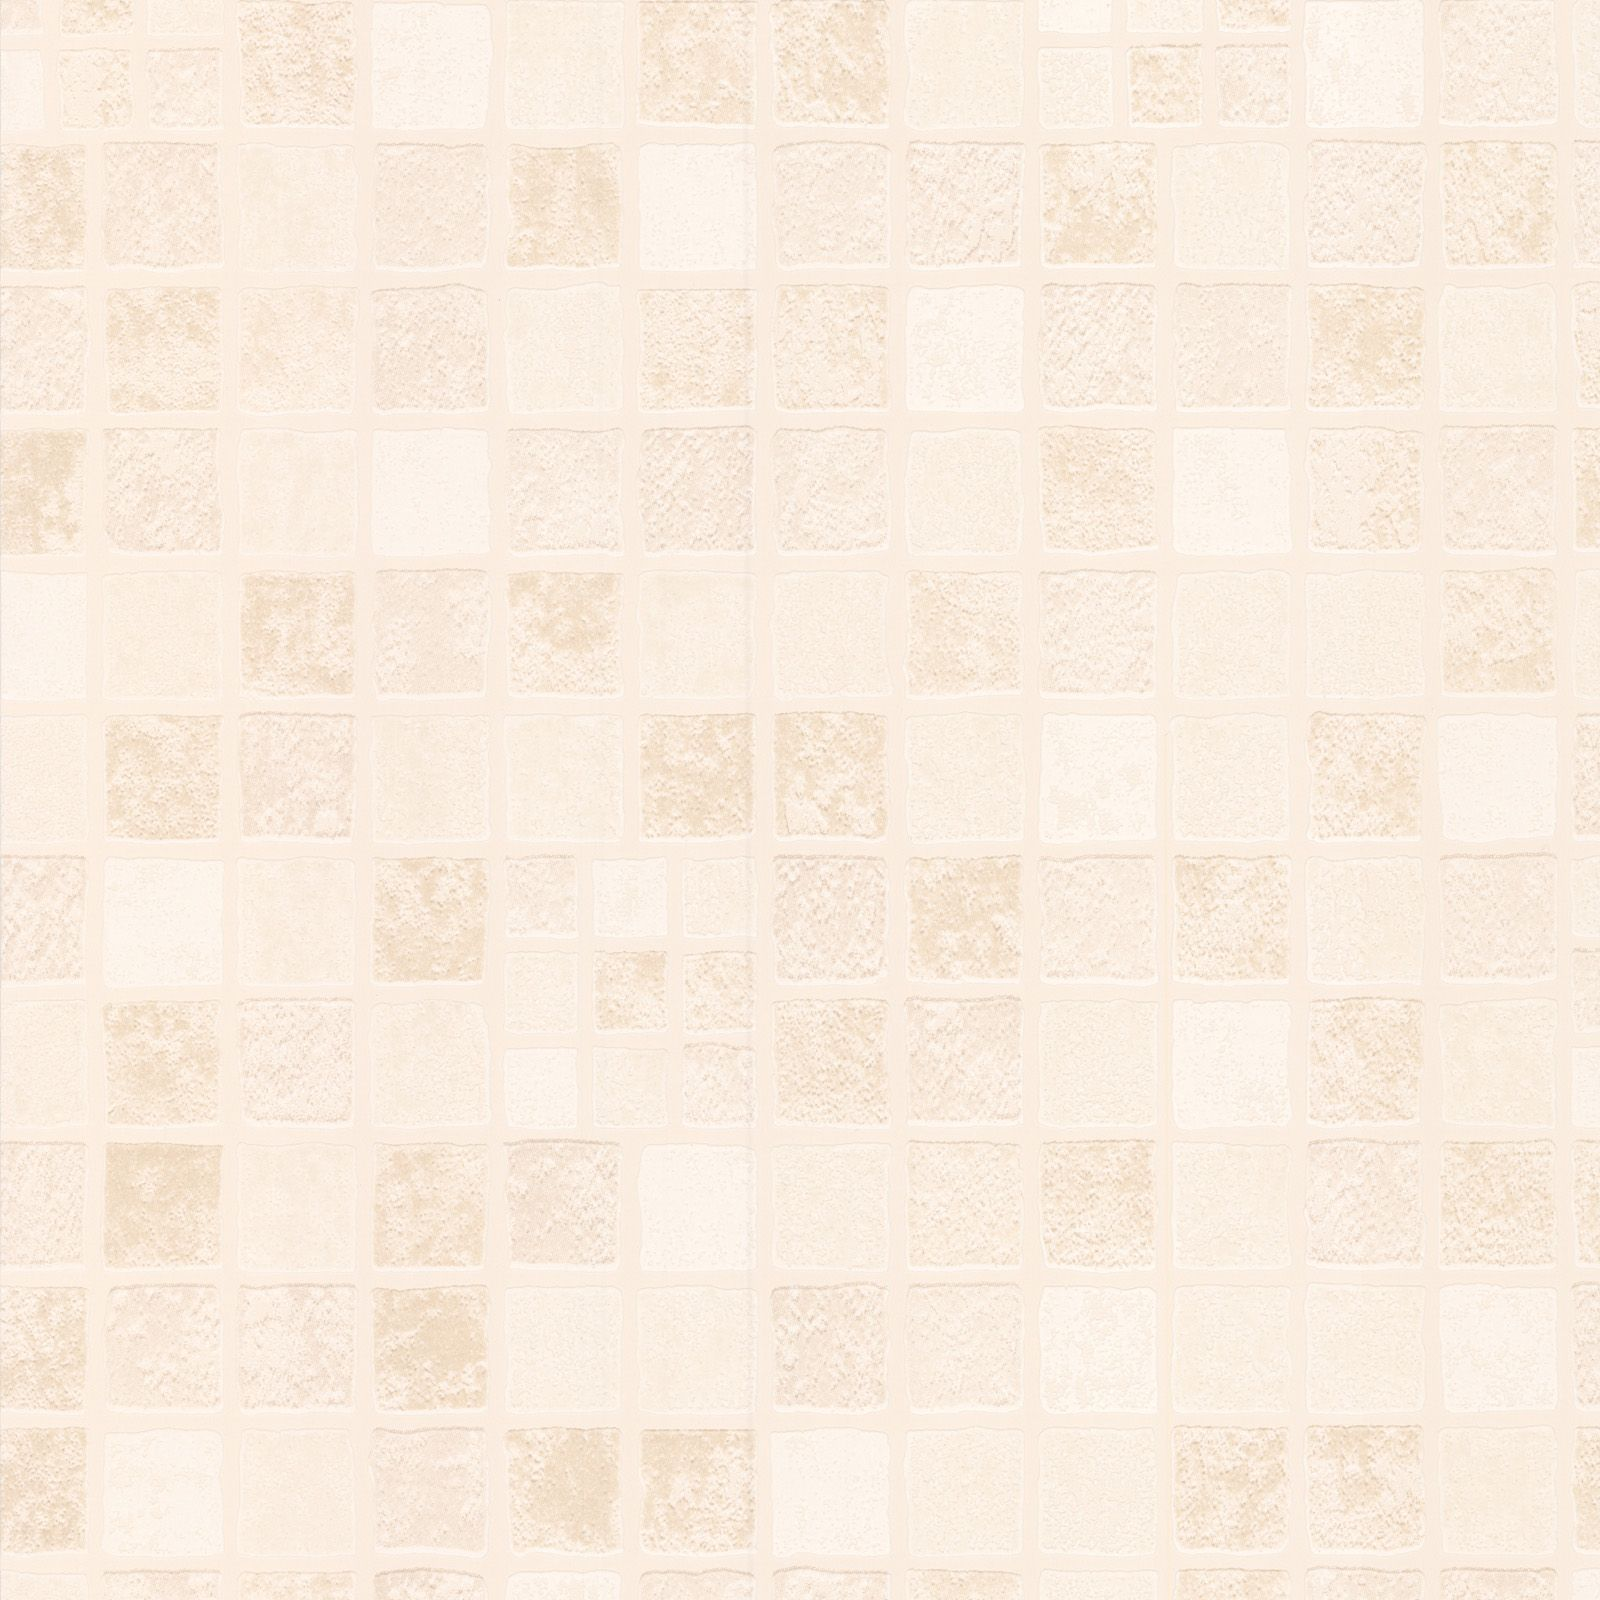 Cornish Stone Effect Wallpaper From B Q: Contour Earthern Beige Tile Wallpaper